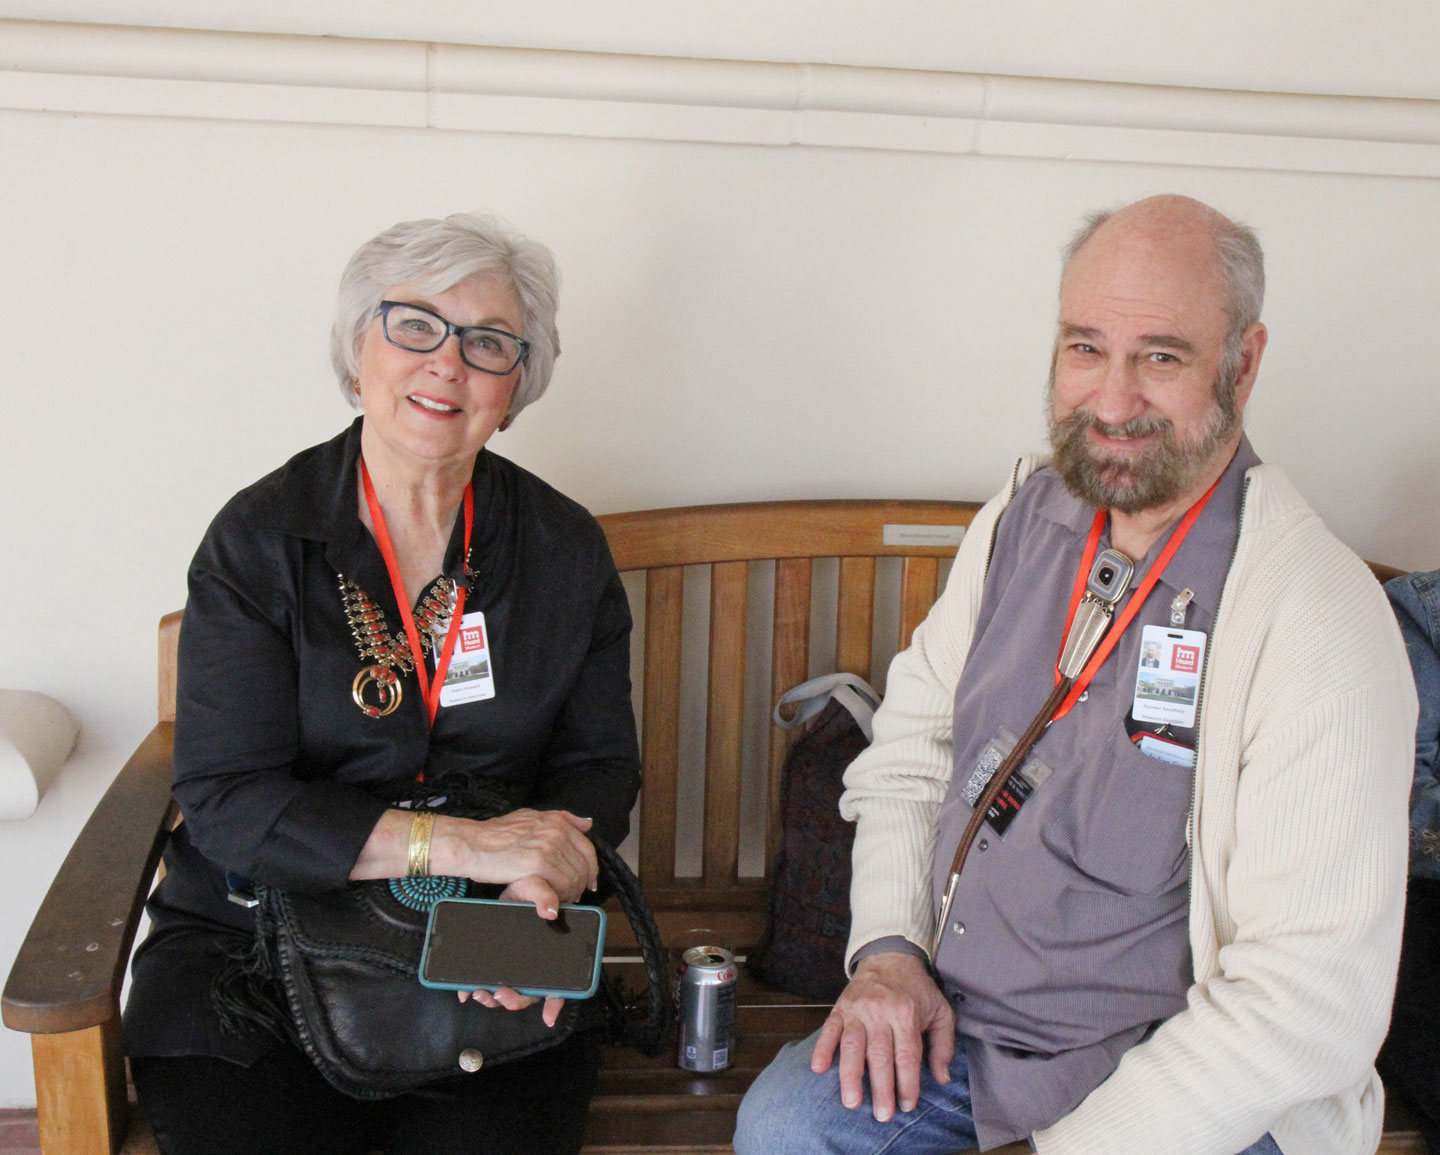 "KATHLEEN HOWARD AND NORMAN SANDFIELD, relaxing after their book signing at the Heard Indian Fair. Both have worked with Heard Museum Curator Diana Pardue, in Howard's case cowriting ""Over the Edge: Fred Harvey at the Grand Canyon and in the Great Southwest"". Sandfield and Pardue cowrote ""Awa Tsireh: Pueblo Painter and Metalsmith"", which is also a current exhibition at the Heard Museum. Sandfield is also an expert on Japanese netsuke carvings, which just goes to show one can never wear too many hats."